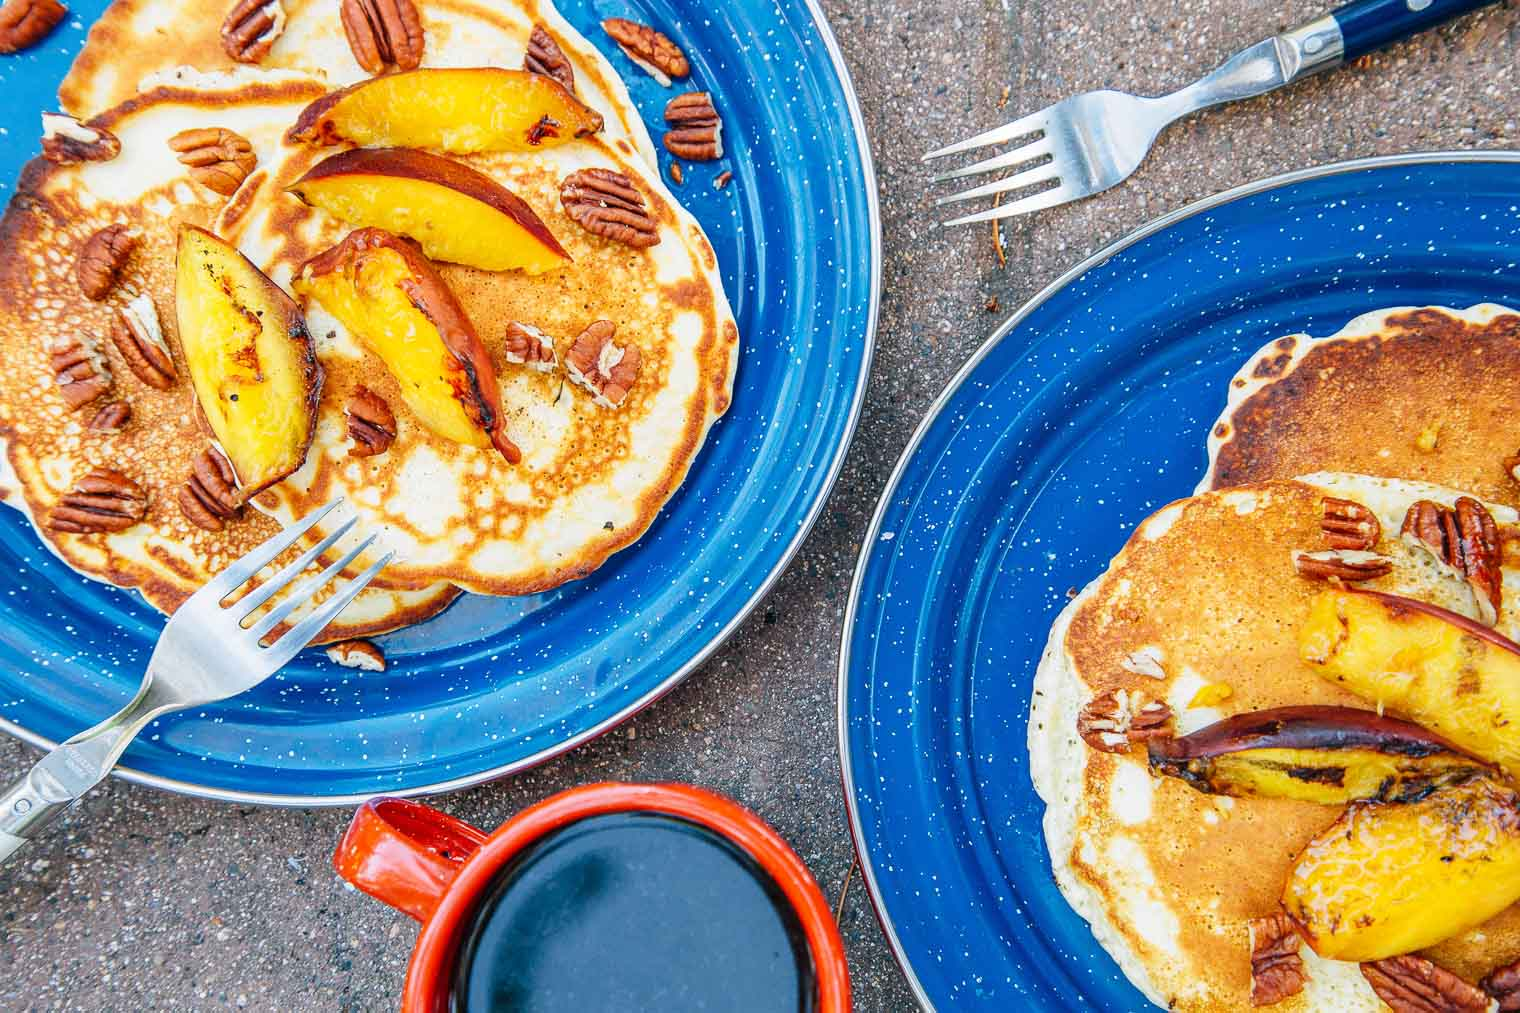 An easy twist on the camp breakfast classic, these pancakes are topped with grilled peaches and chopped pecans.